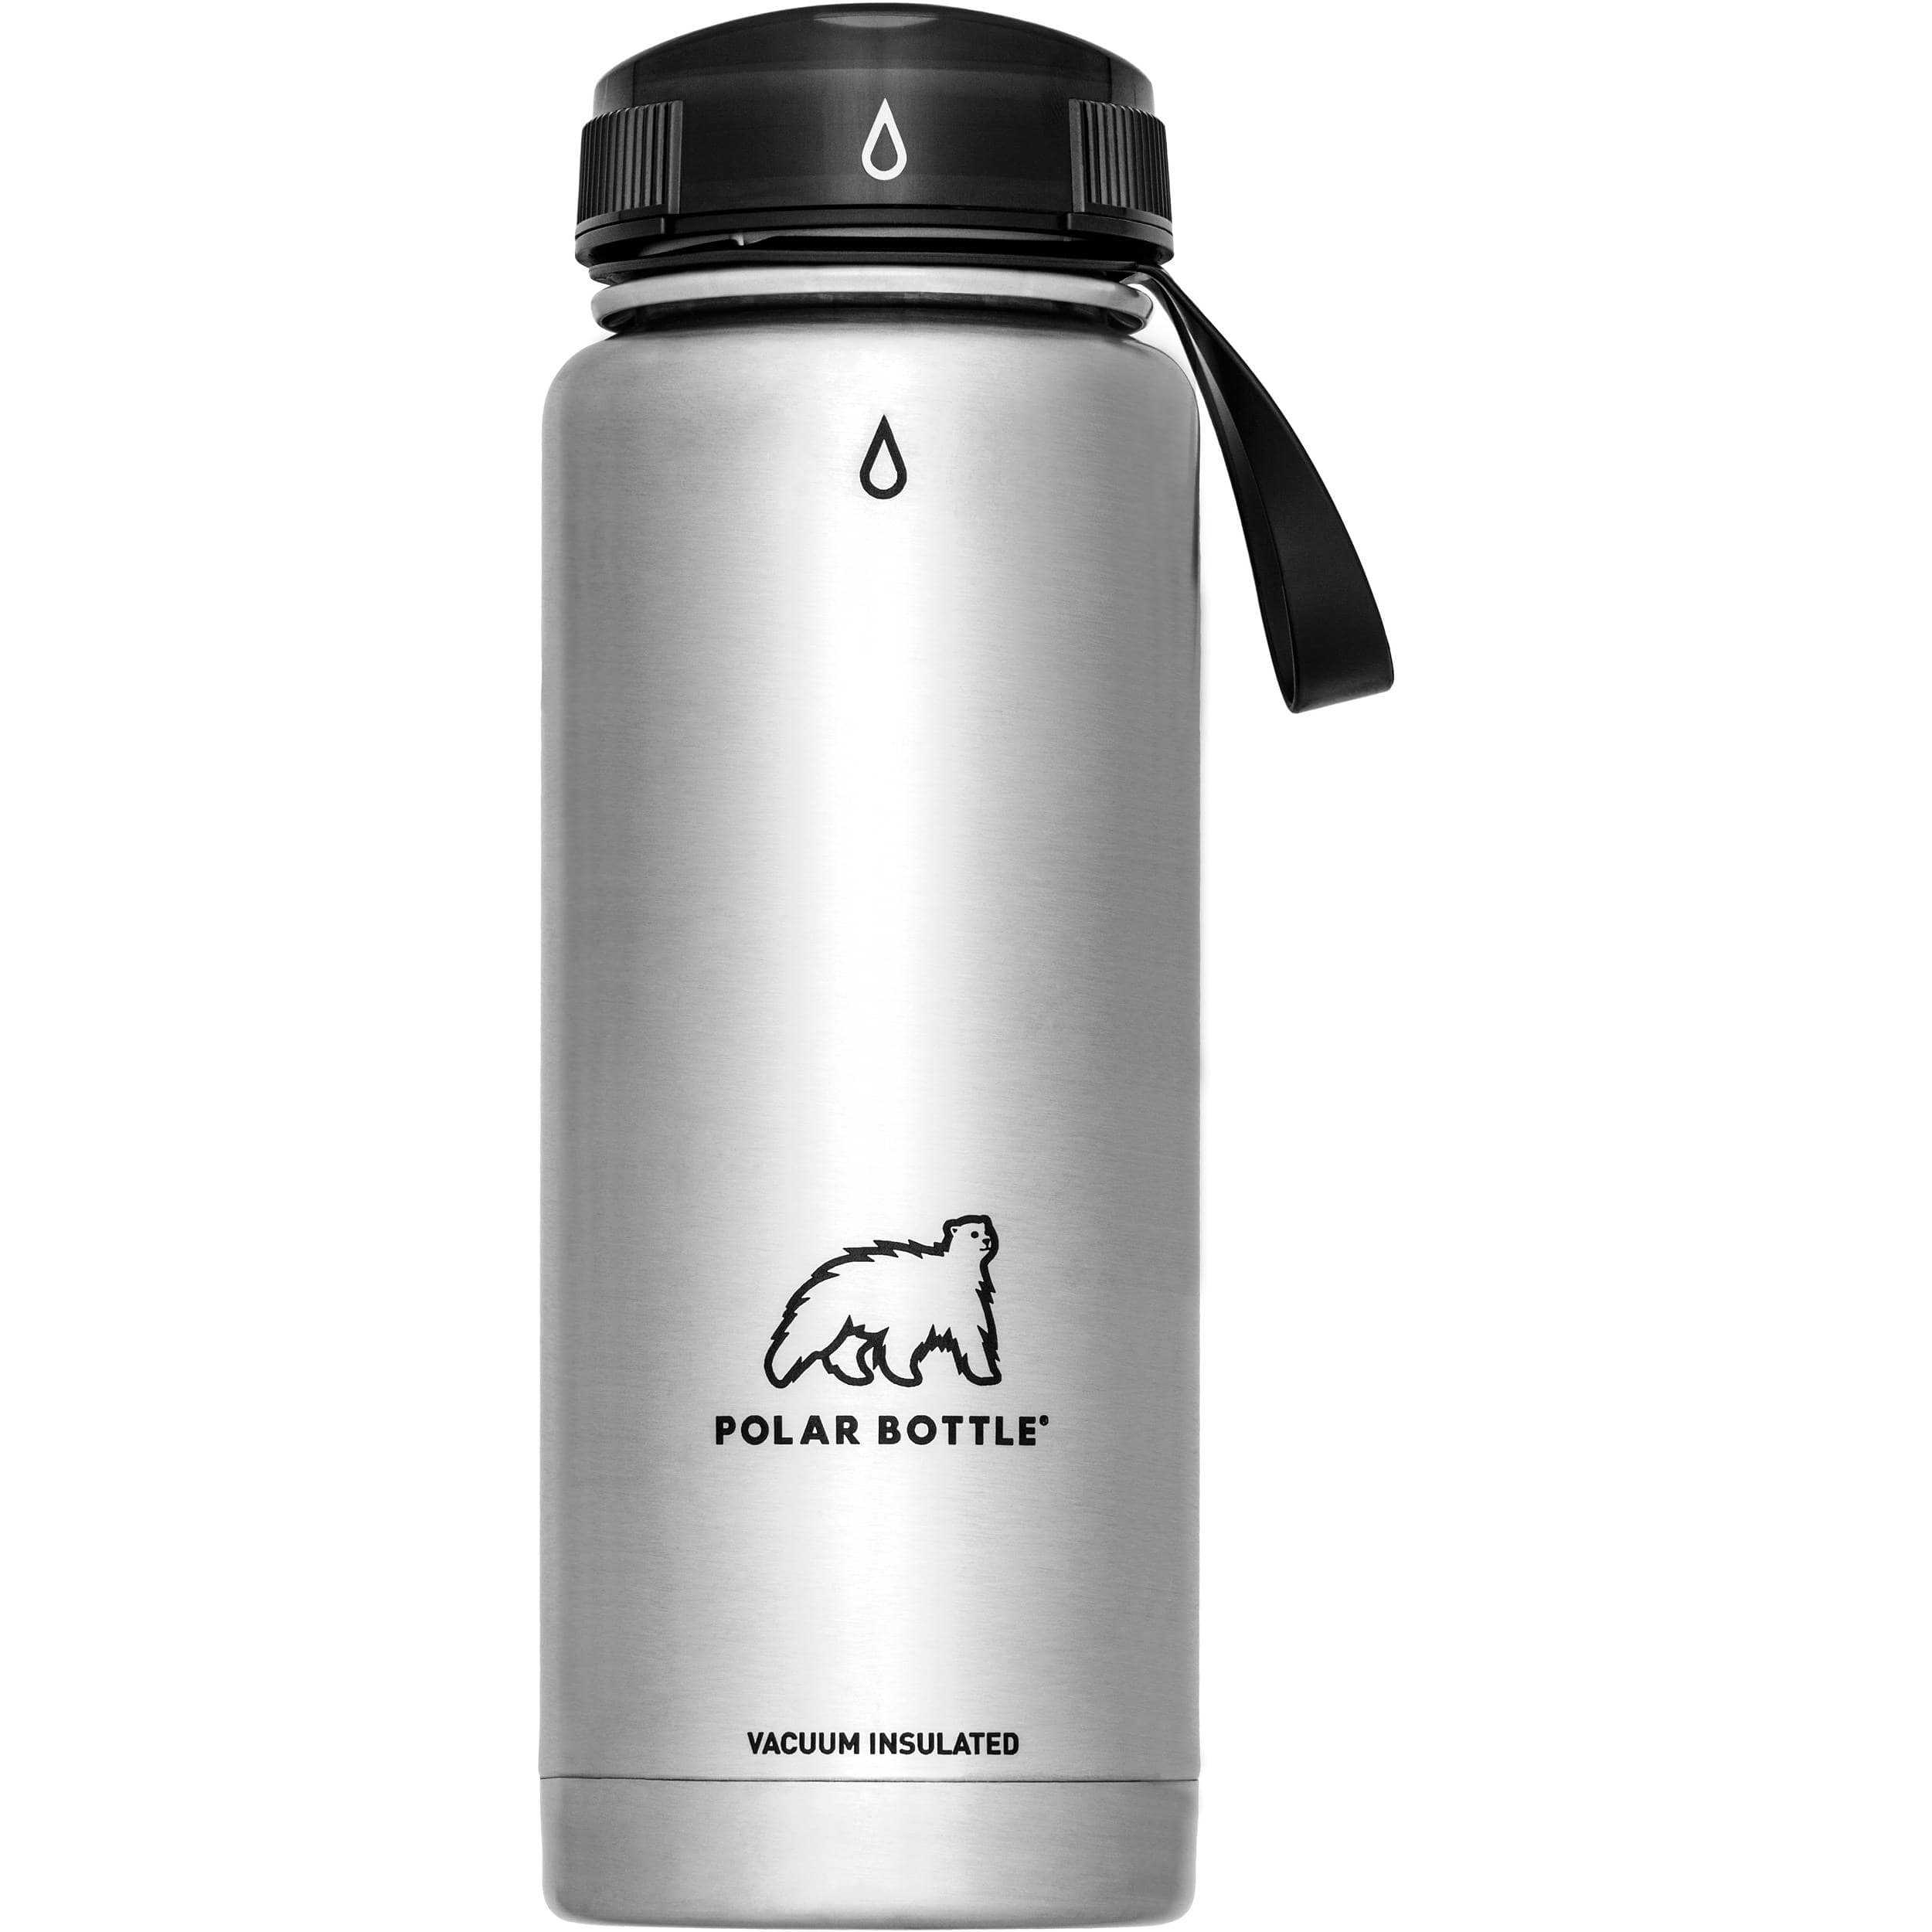 Polar Bottle: 50% Off Sitewide! (Excluding Sale Items) $9.99